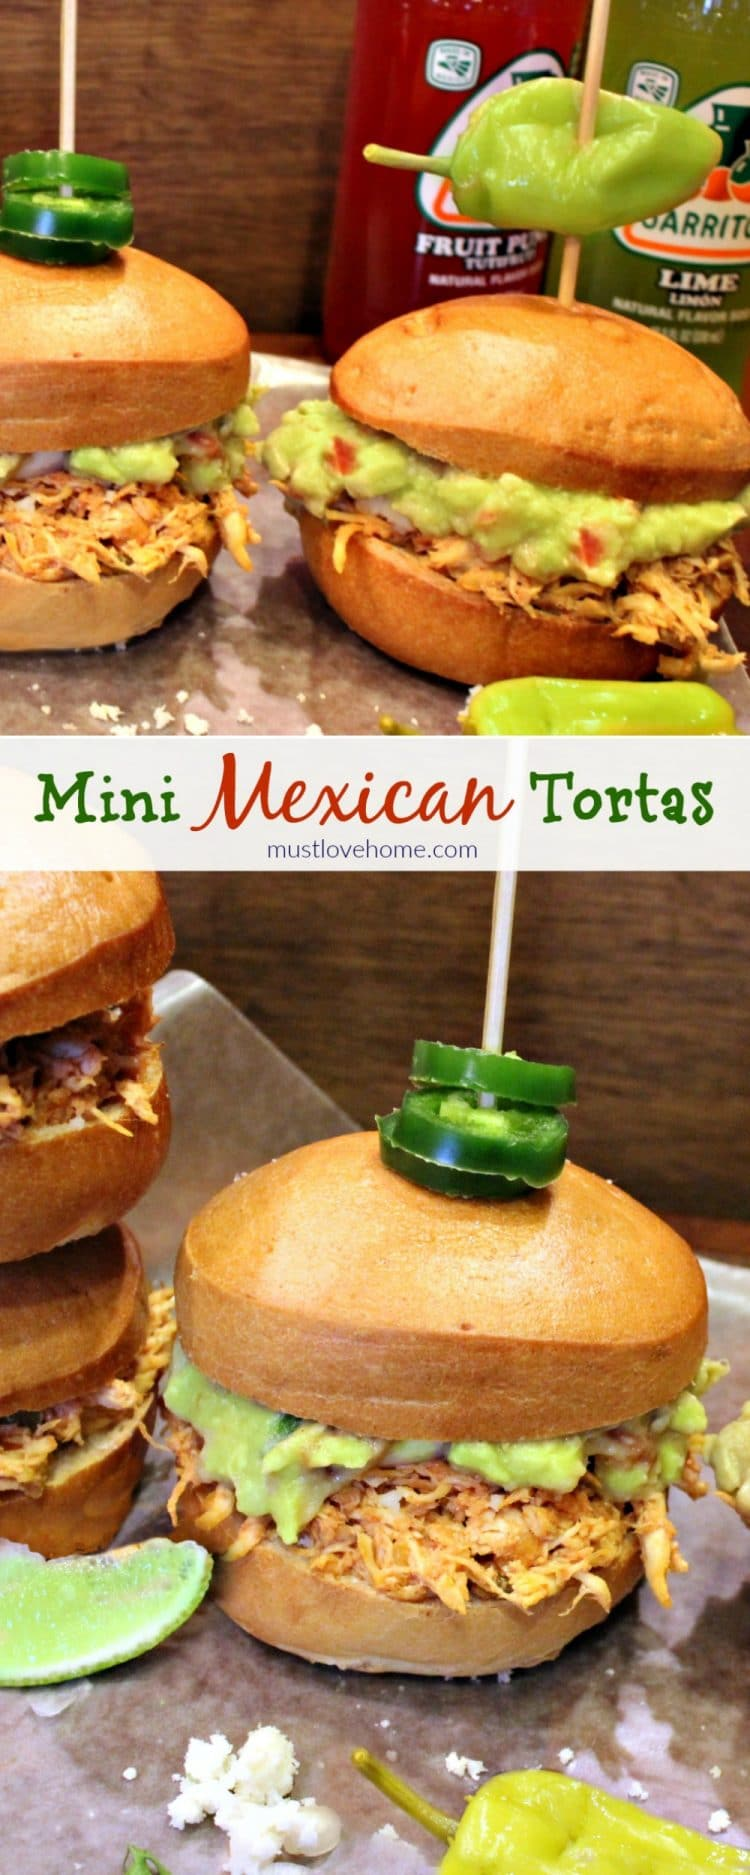 Mini Mexican Tortas are little sandwiches filled with spicy chicken, guacamole and Queso Fresco served up on a warm toasted roll - perfect as appetizers or serve with beans and rice for a complete meal!